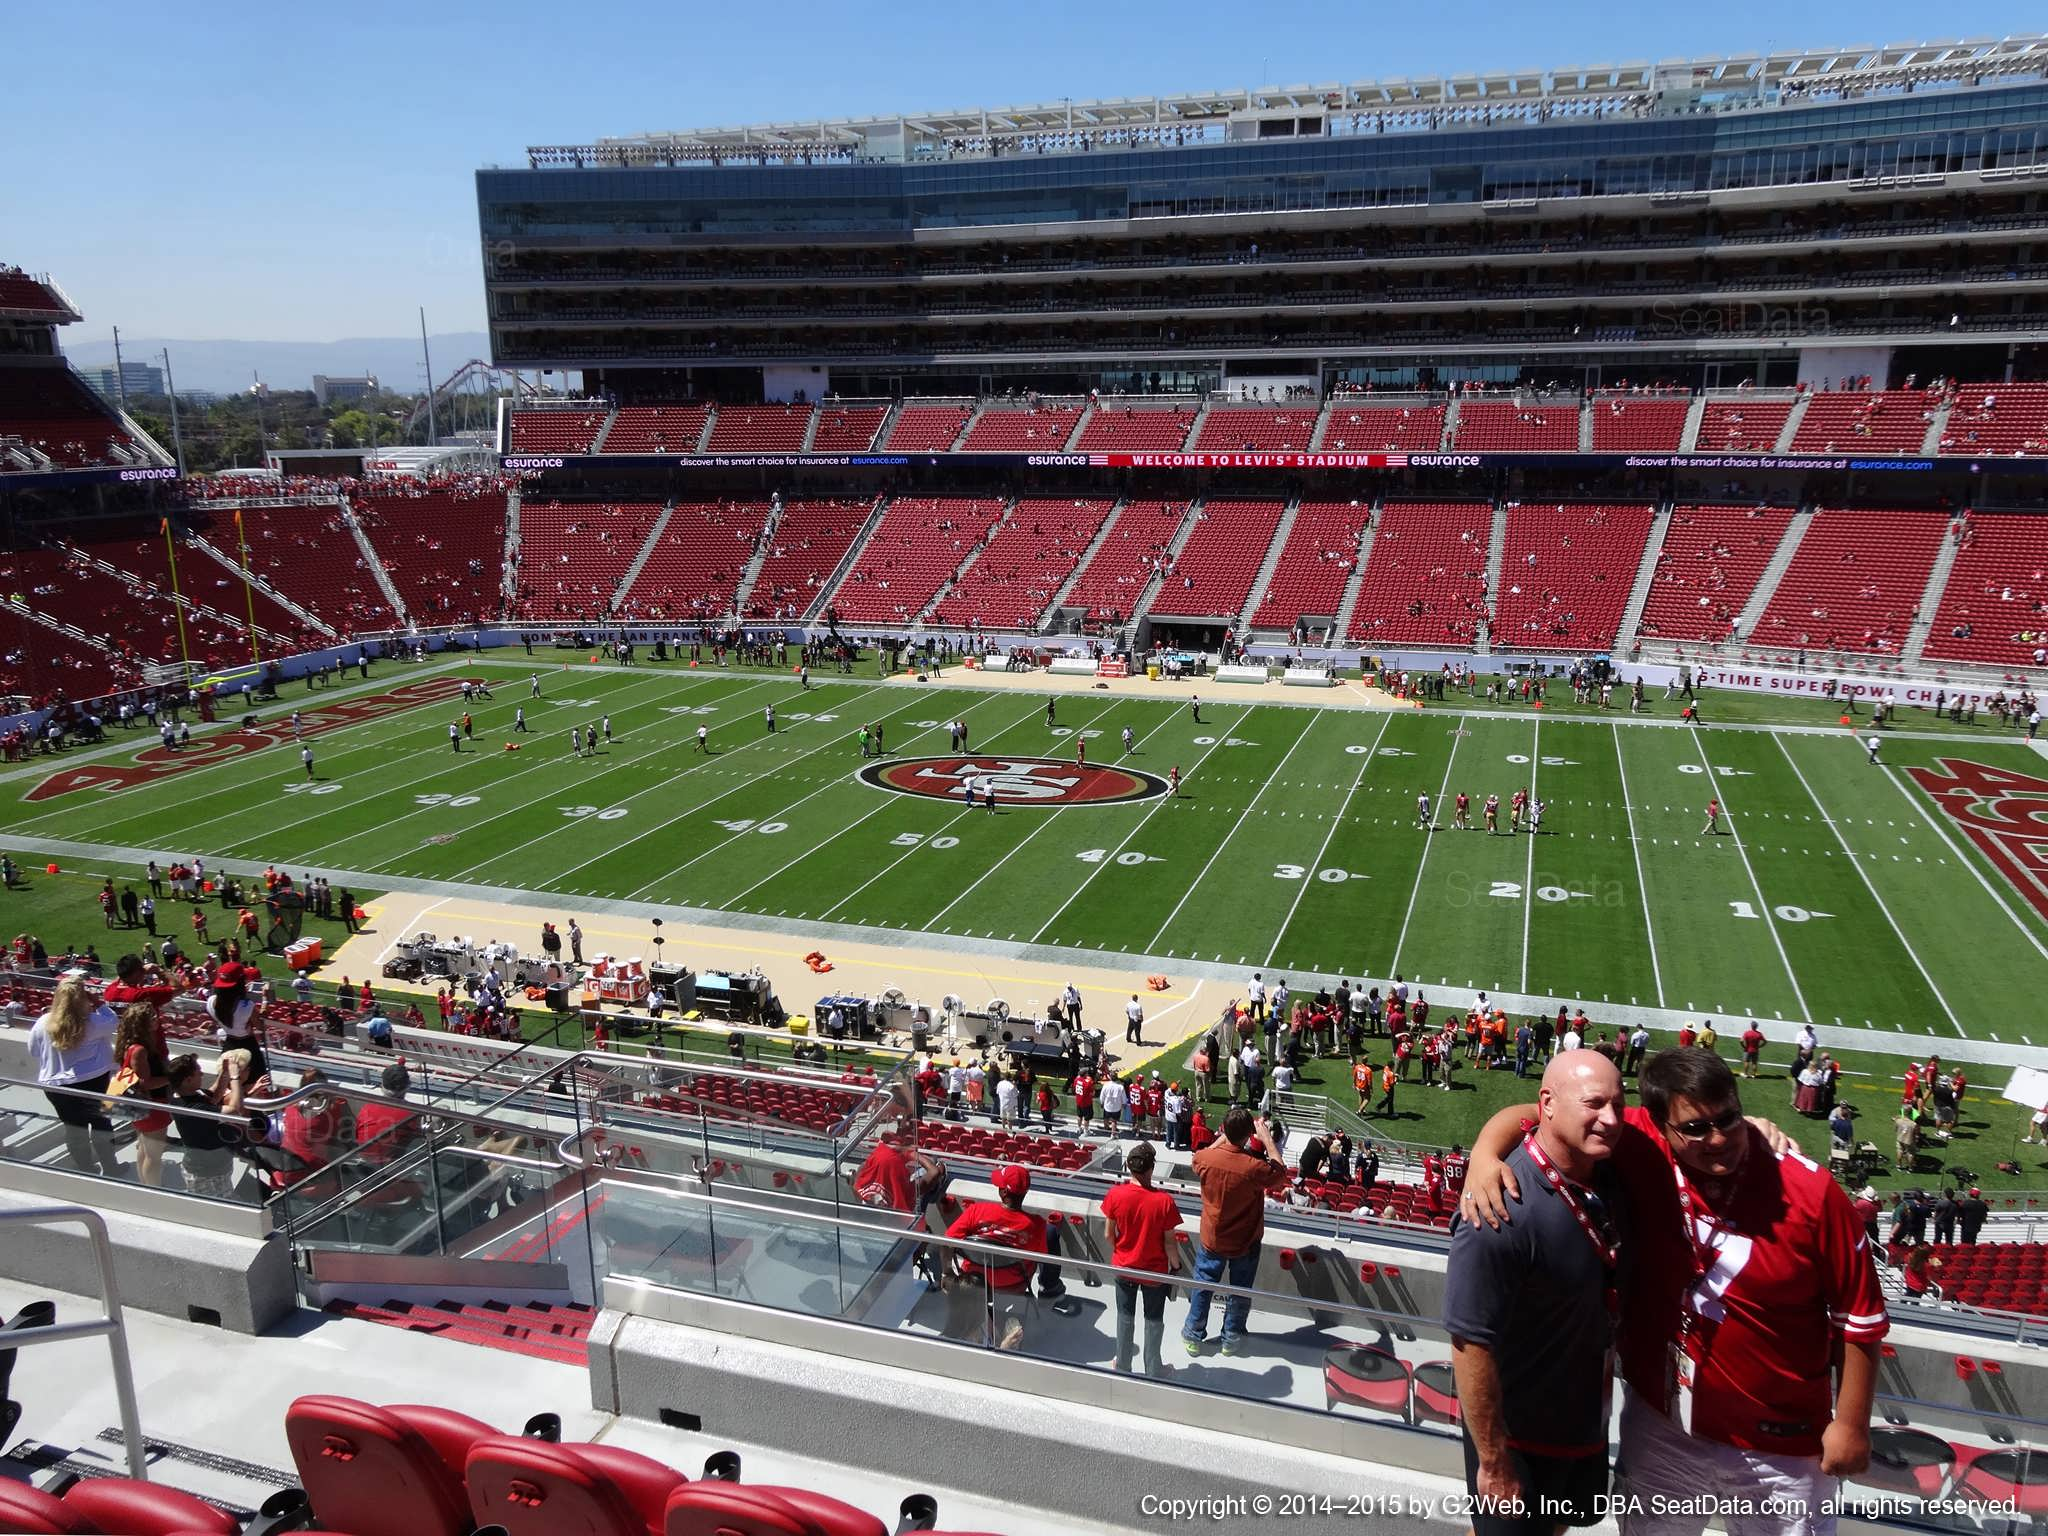 Seat view from section 213 at Levi's Stadium, home of the San Francisco 49ers